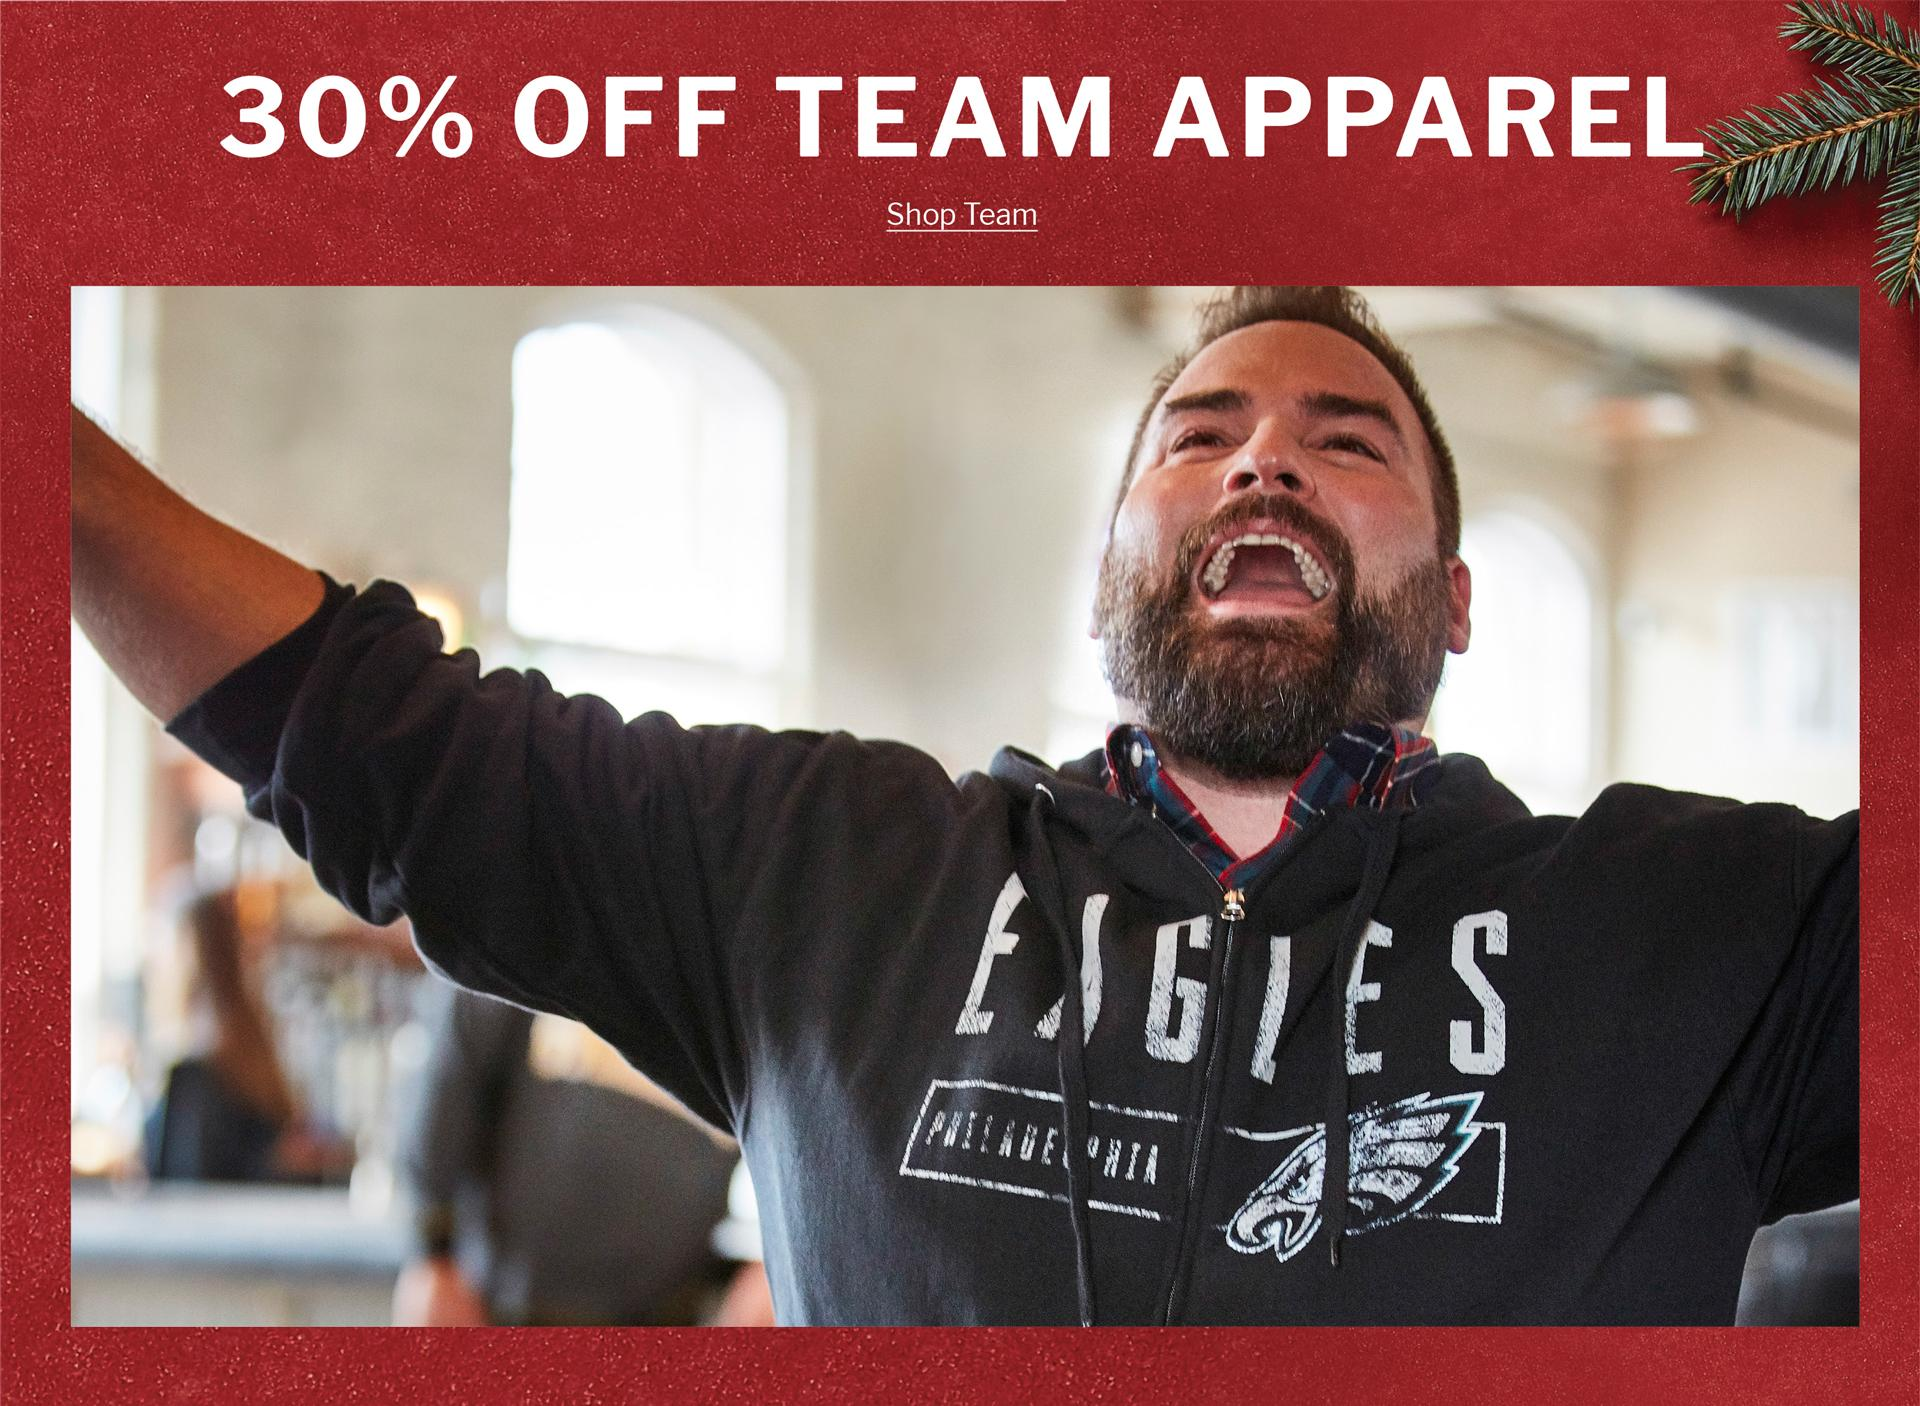 30% OFF TEAM APPAREL